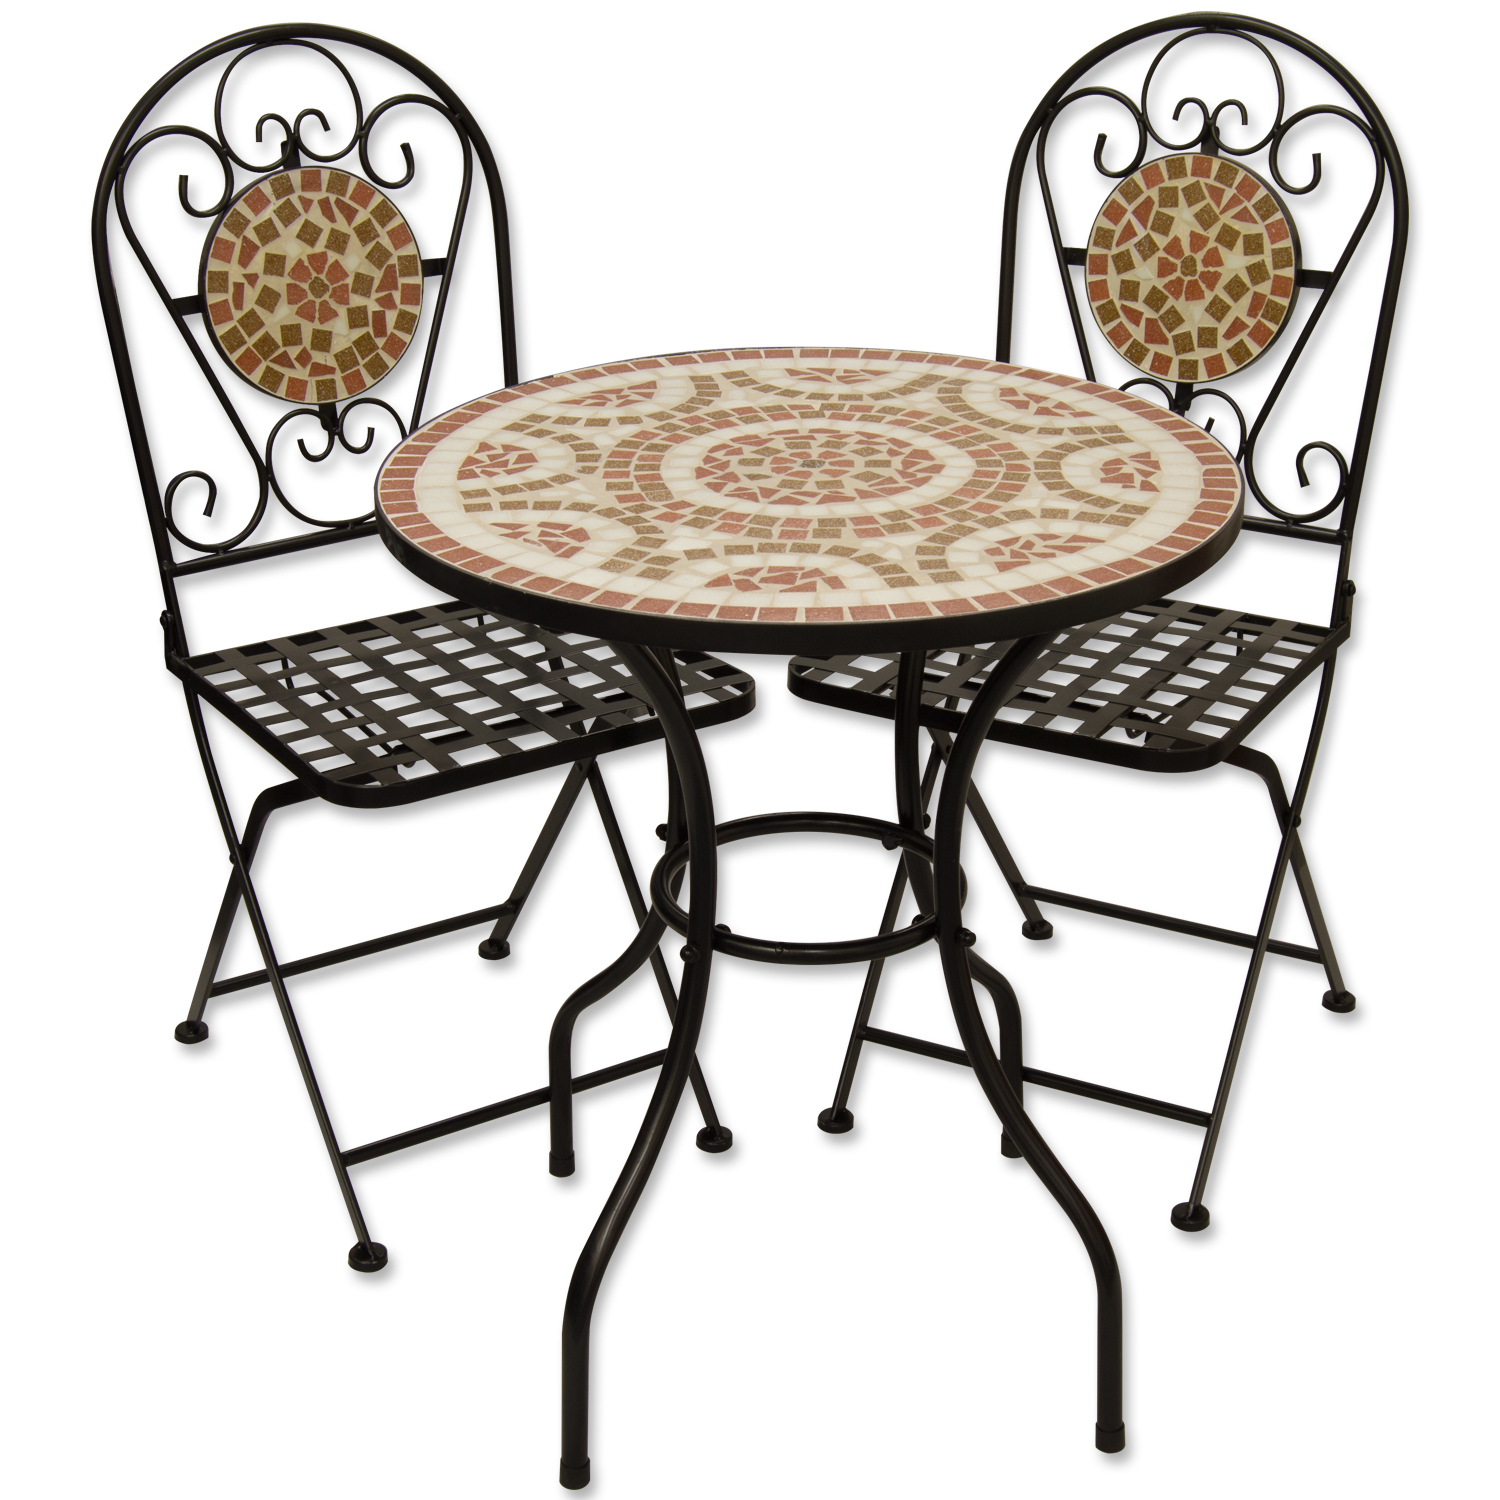 mosaic outdoor dining garden table and folding chair set terracotta ebay. Black Bedroom Furniture Sets. Home Design Ideas